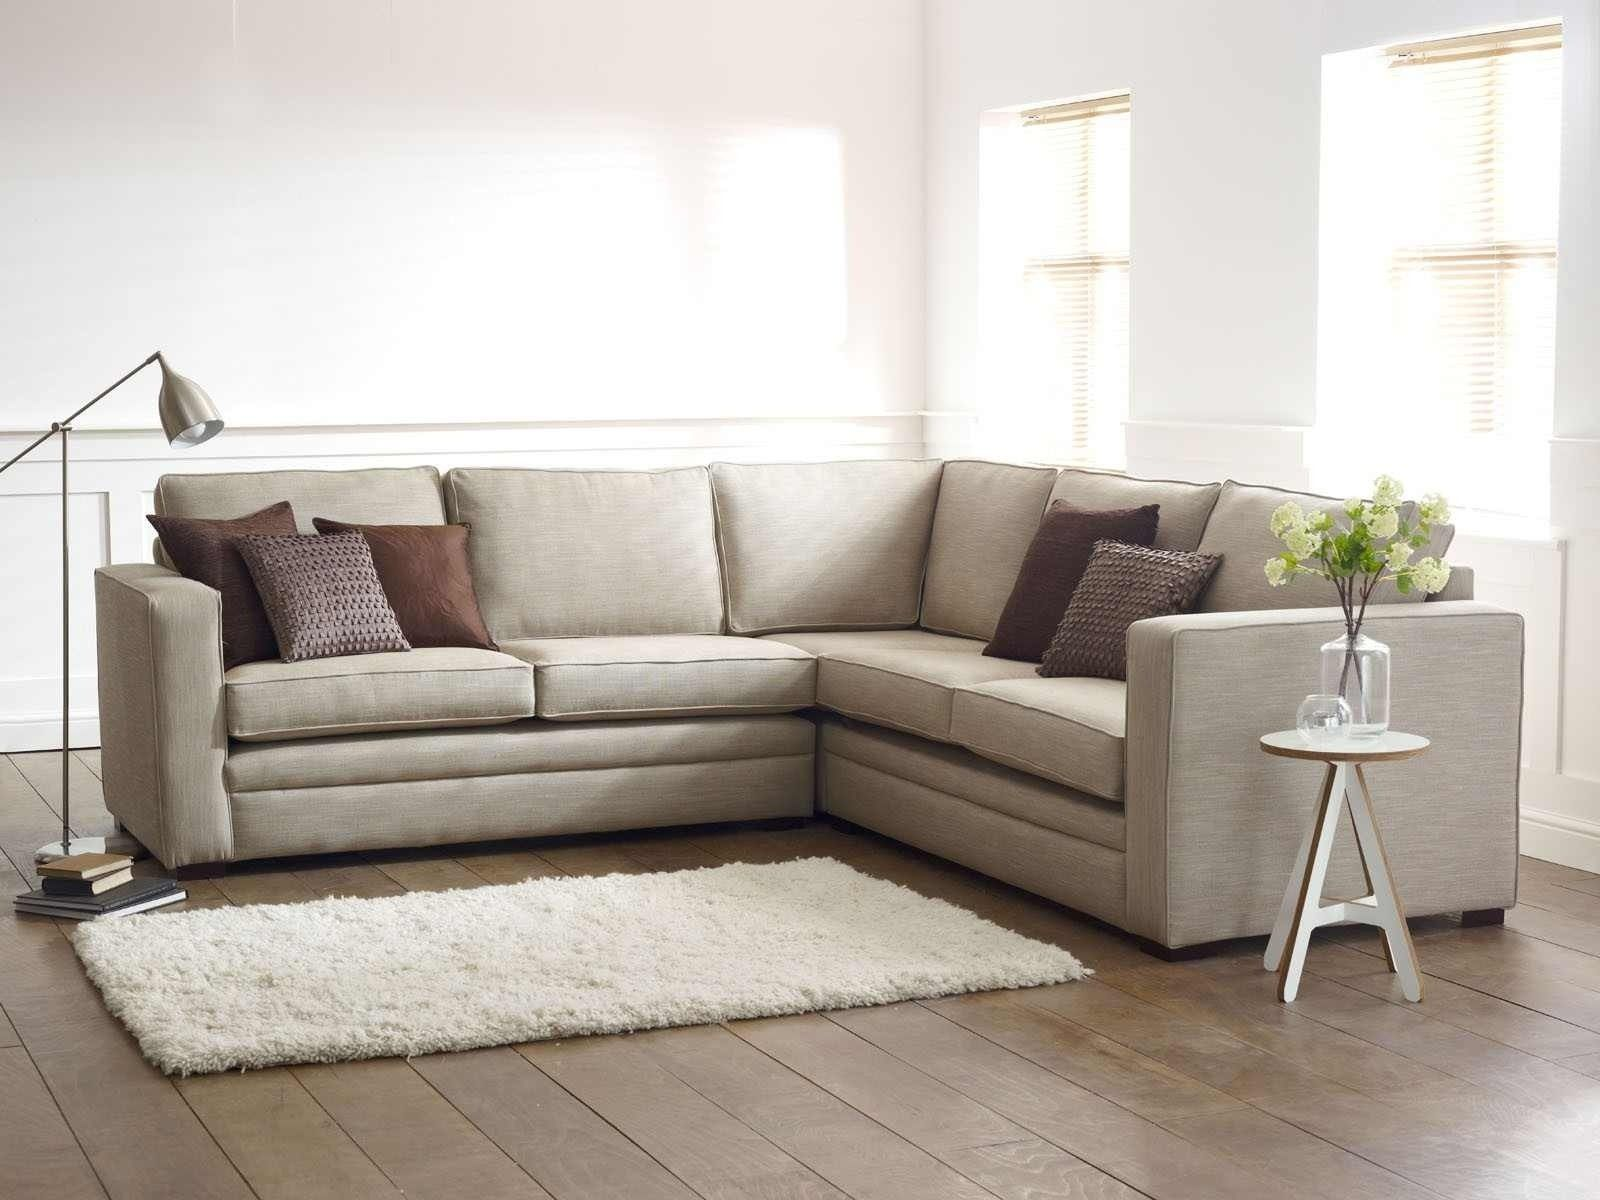 Beautiful Sectional Sofas Cheap For Living Room Furniture ...